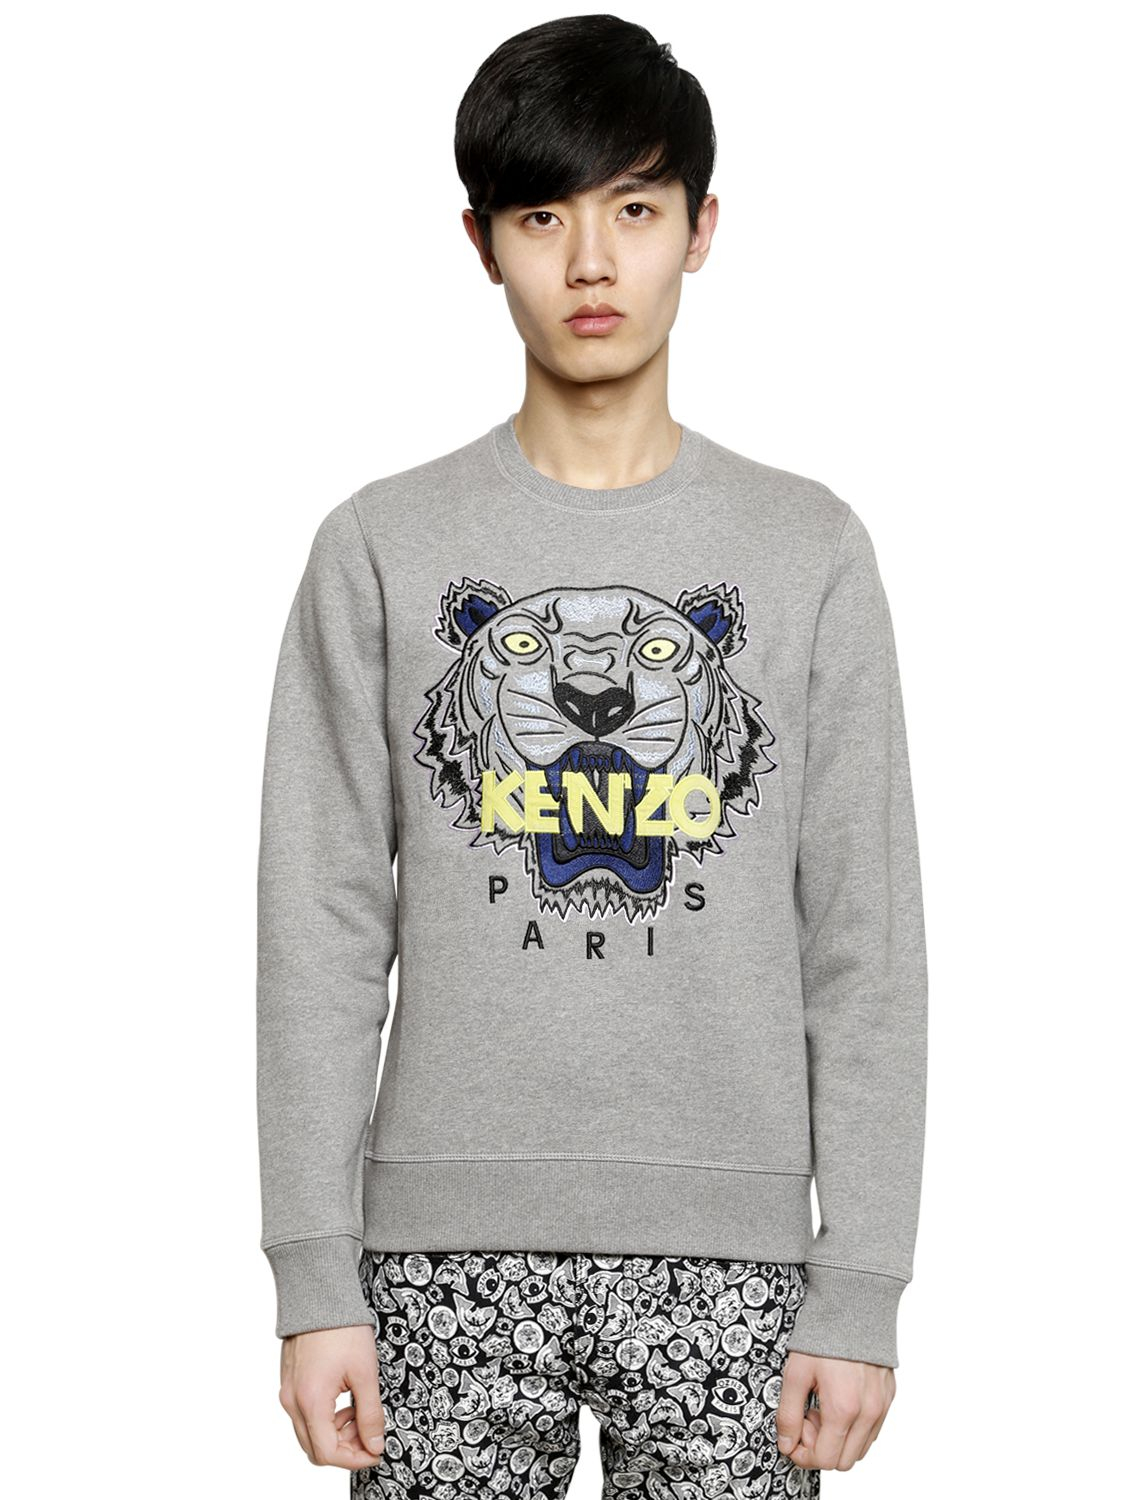 ea5637778 KENZO Tiger Embroidered Cotton Sweatshirt in Gray for Men - Lyst